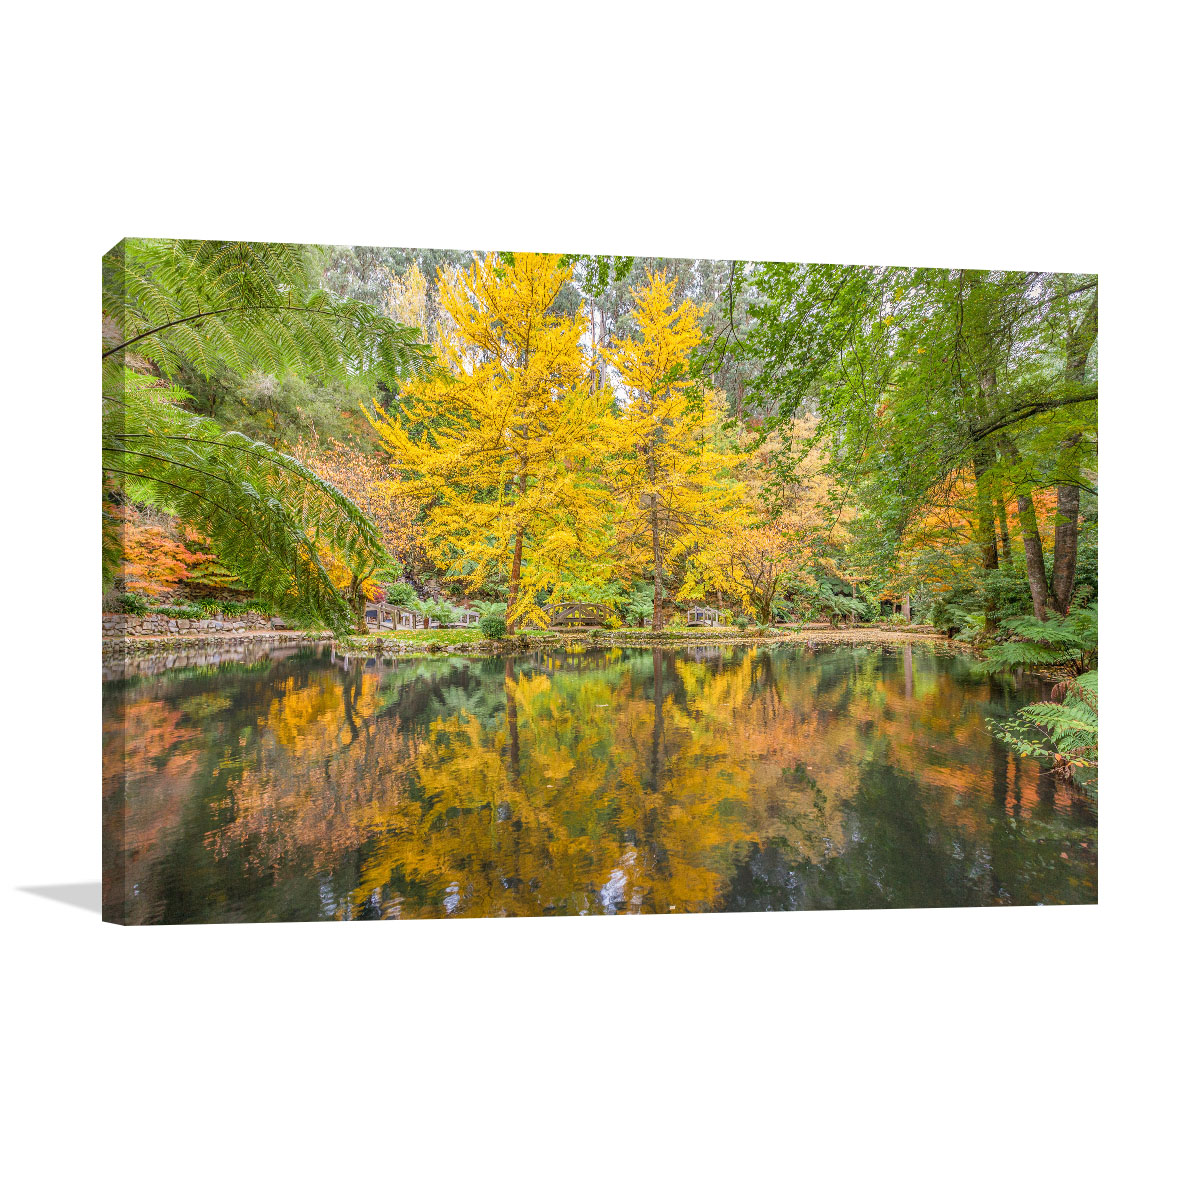 Melbourne Art Print Dandenong Ponds and Trees